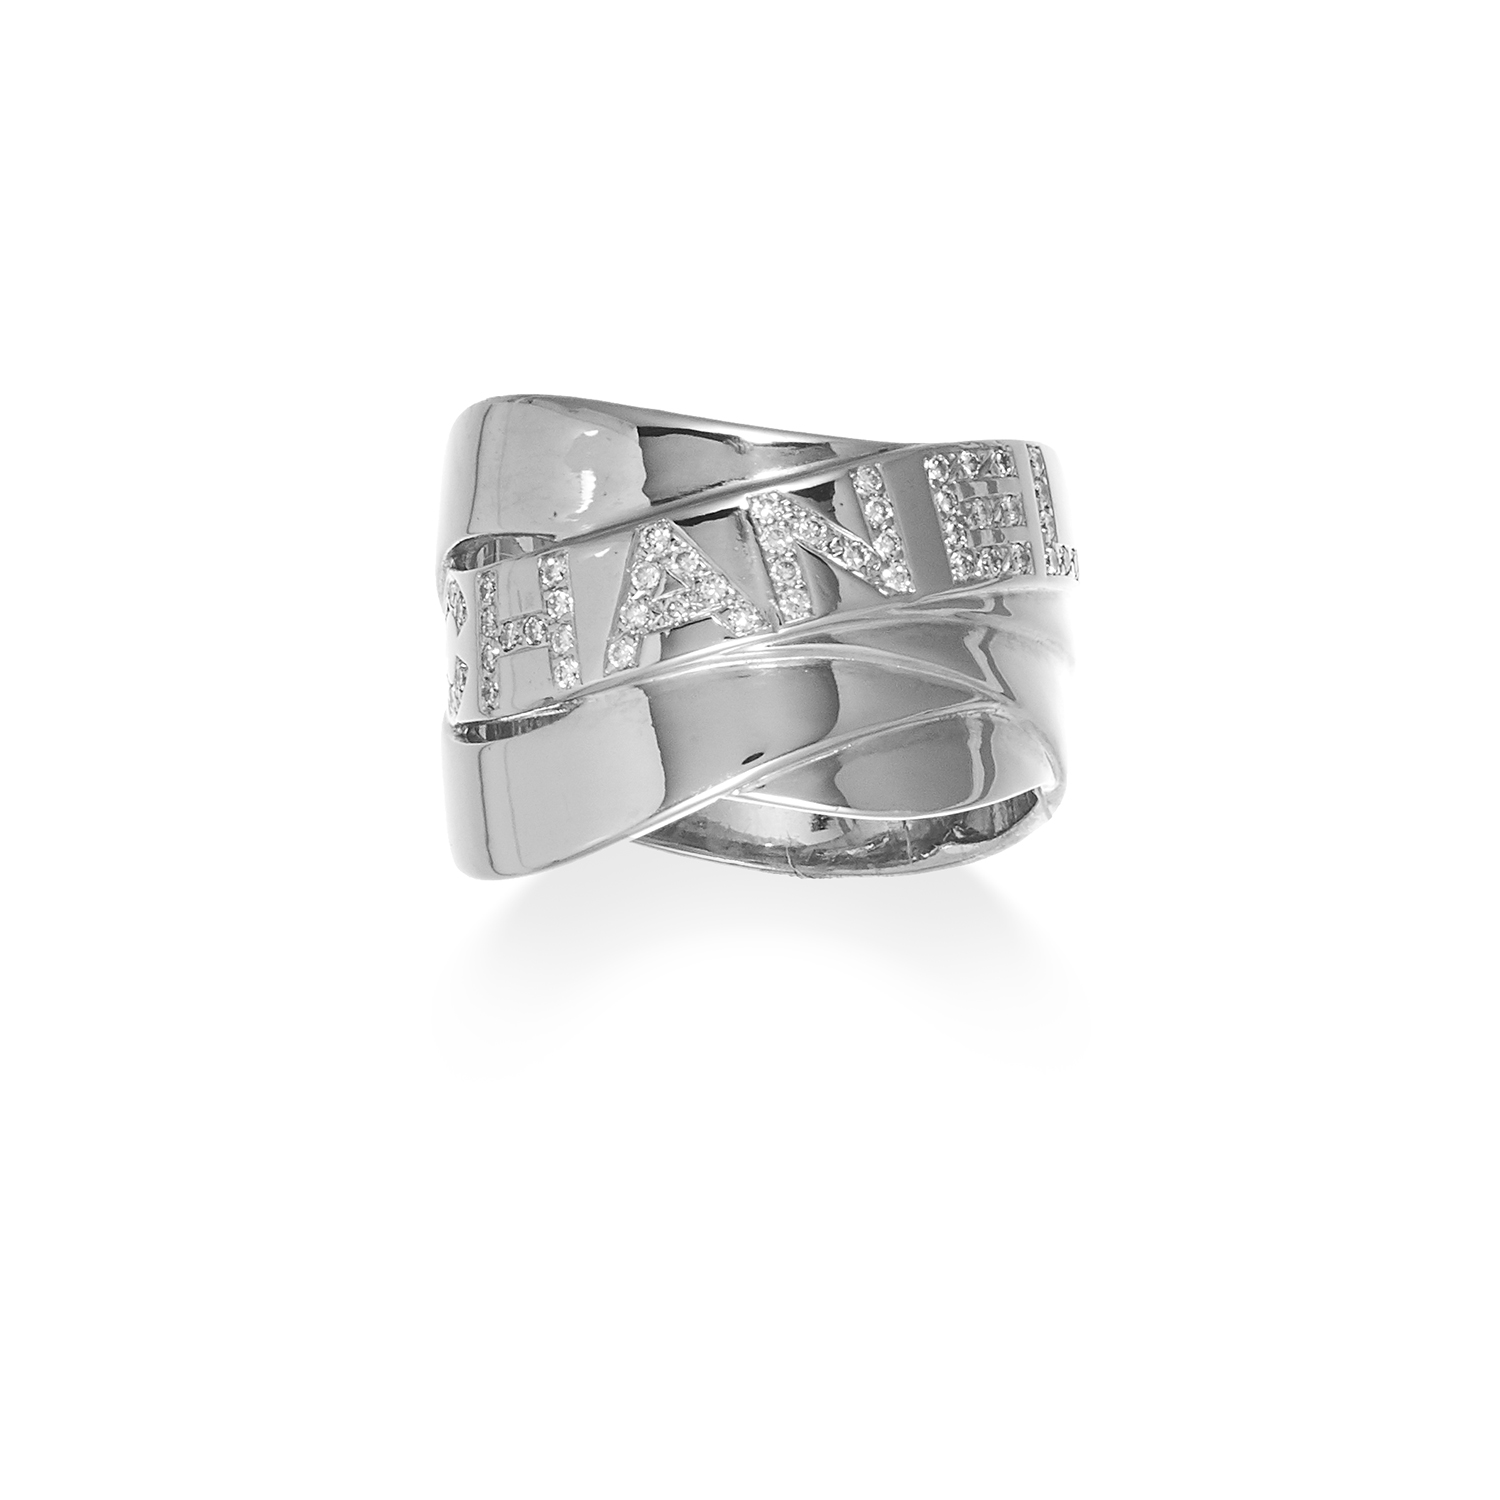 Diamond Band Ring by Chanel. Photo: Elmwood's